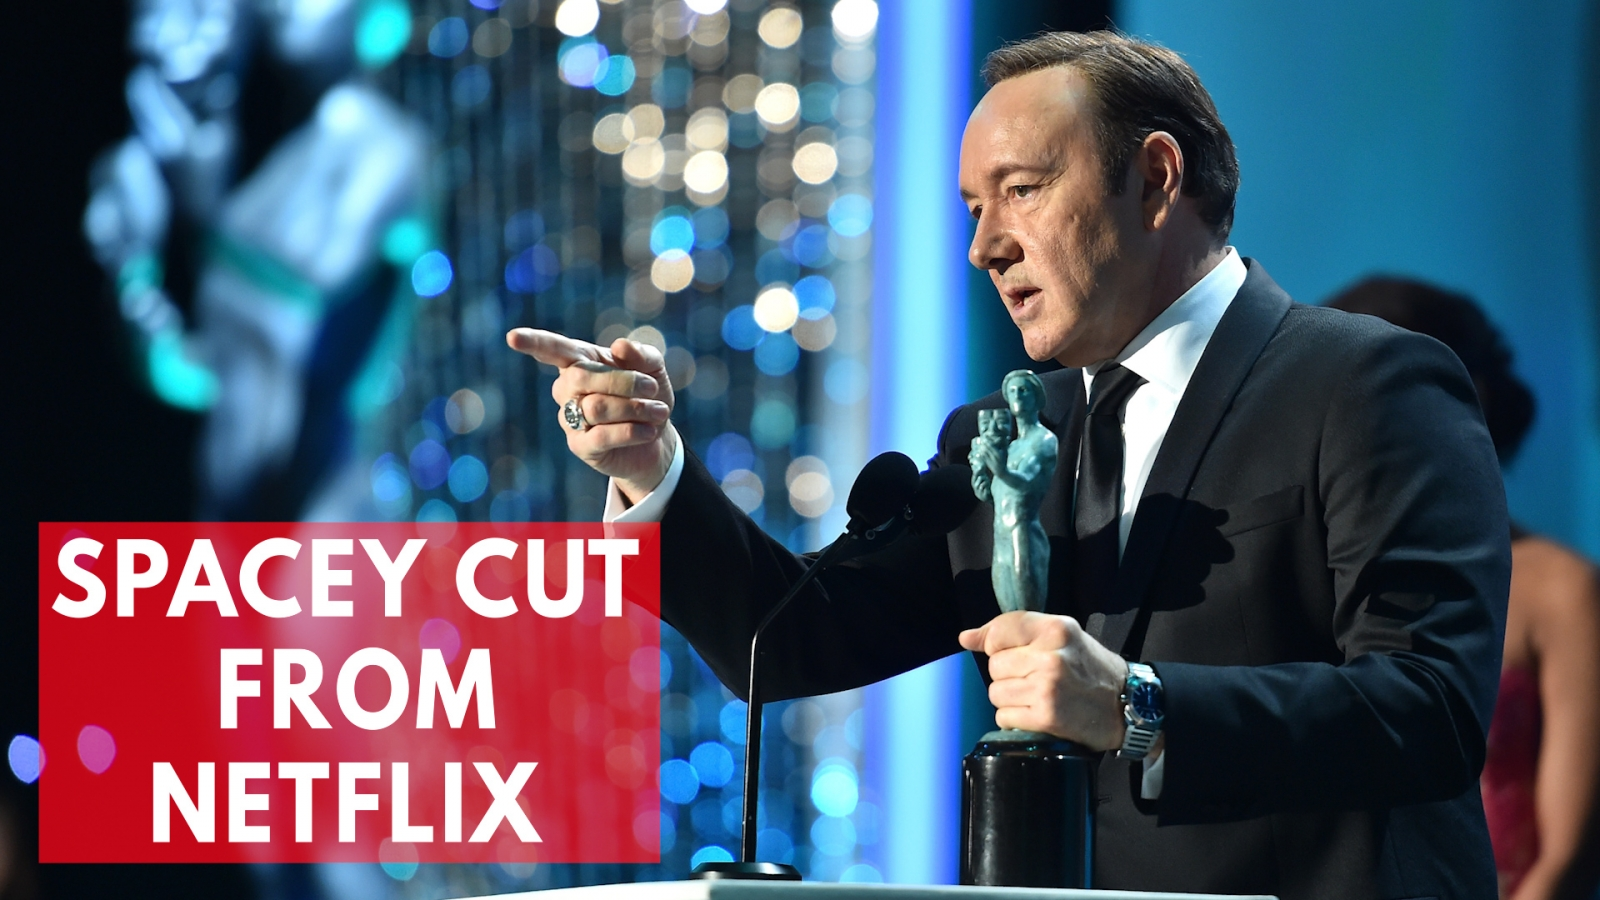 kevin-spacey-released-from-all-netflix-productions-amid-sexual-assault-allegations